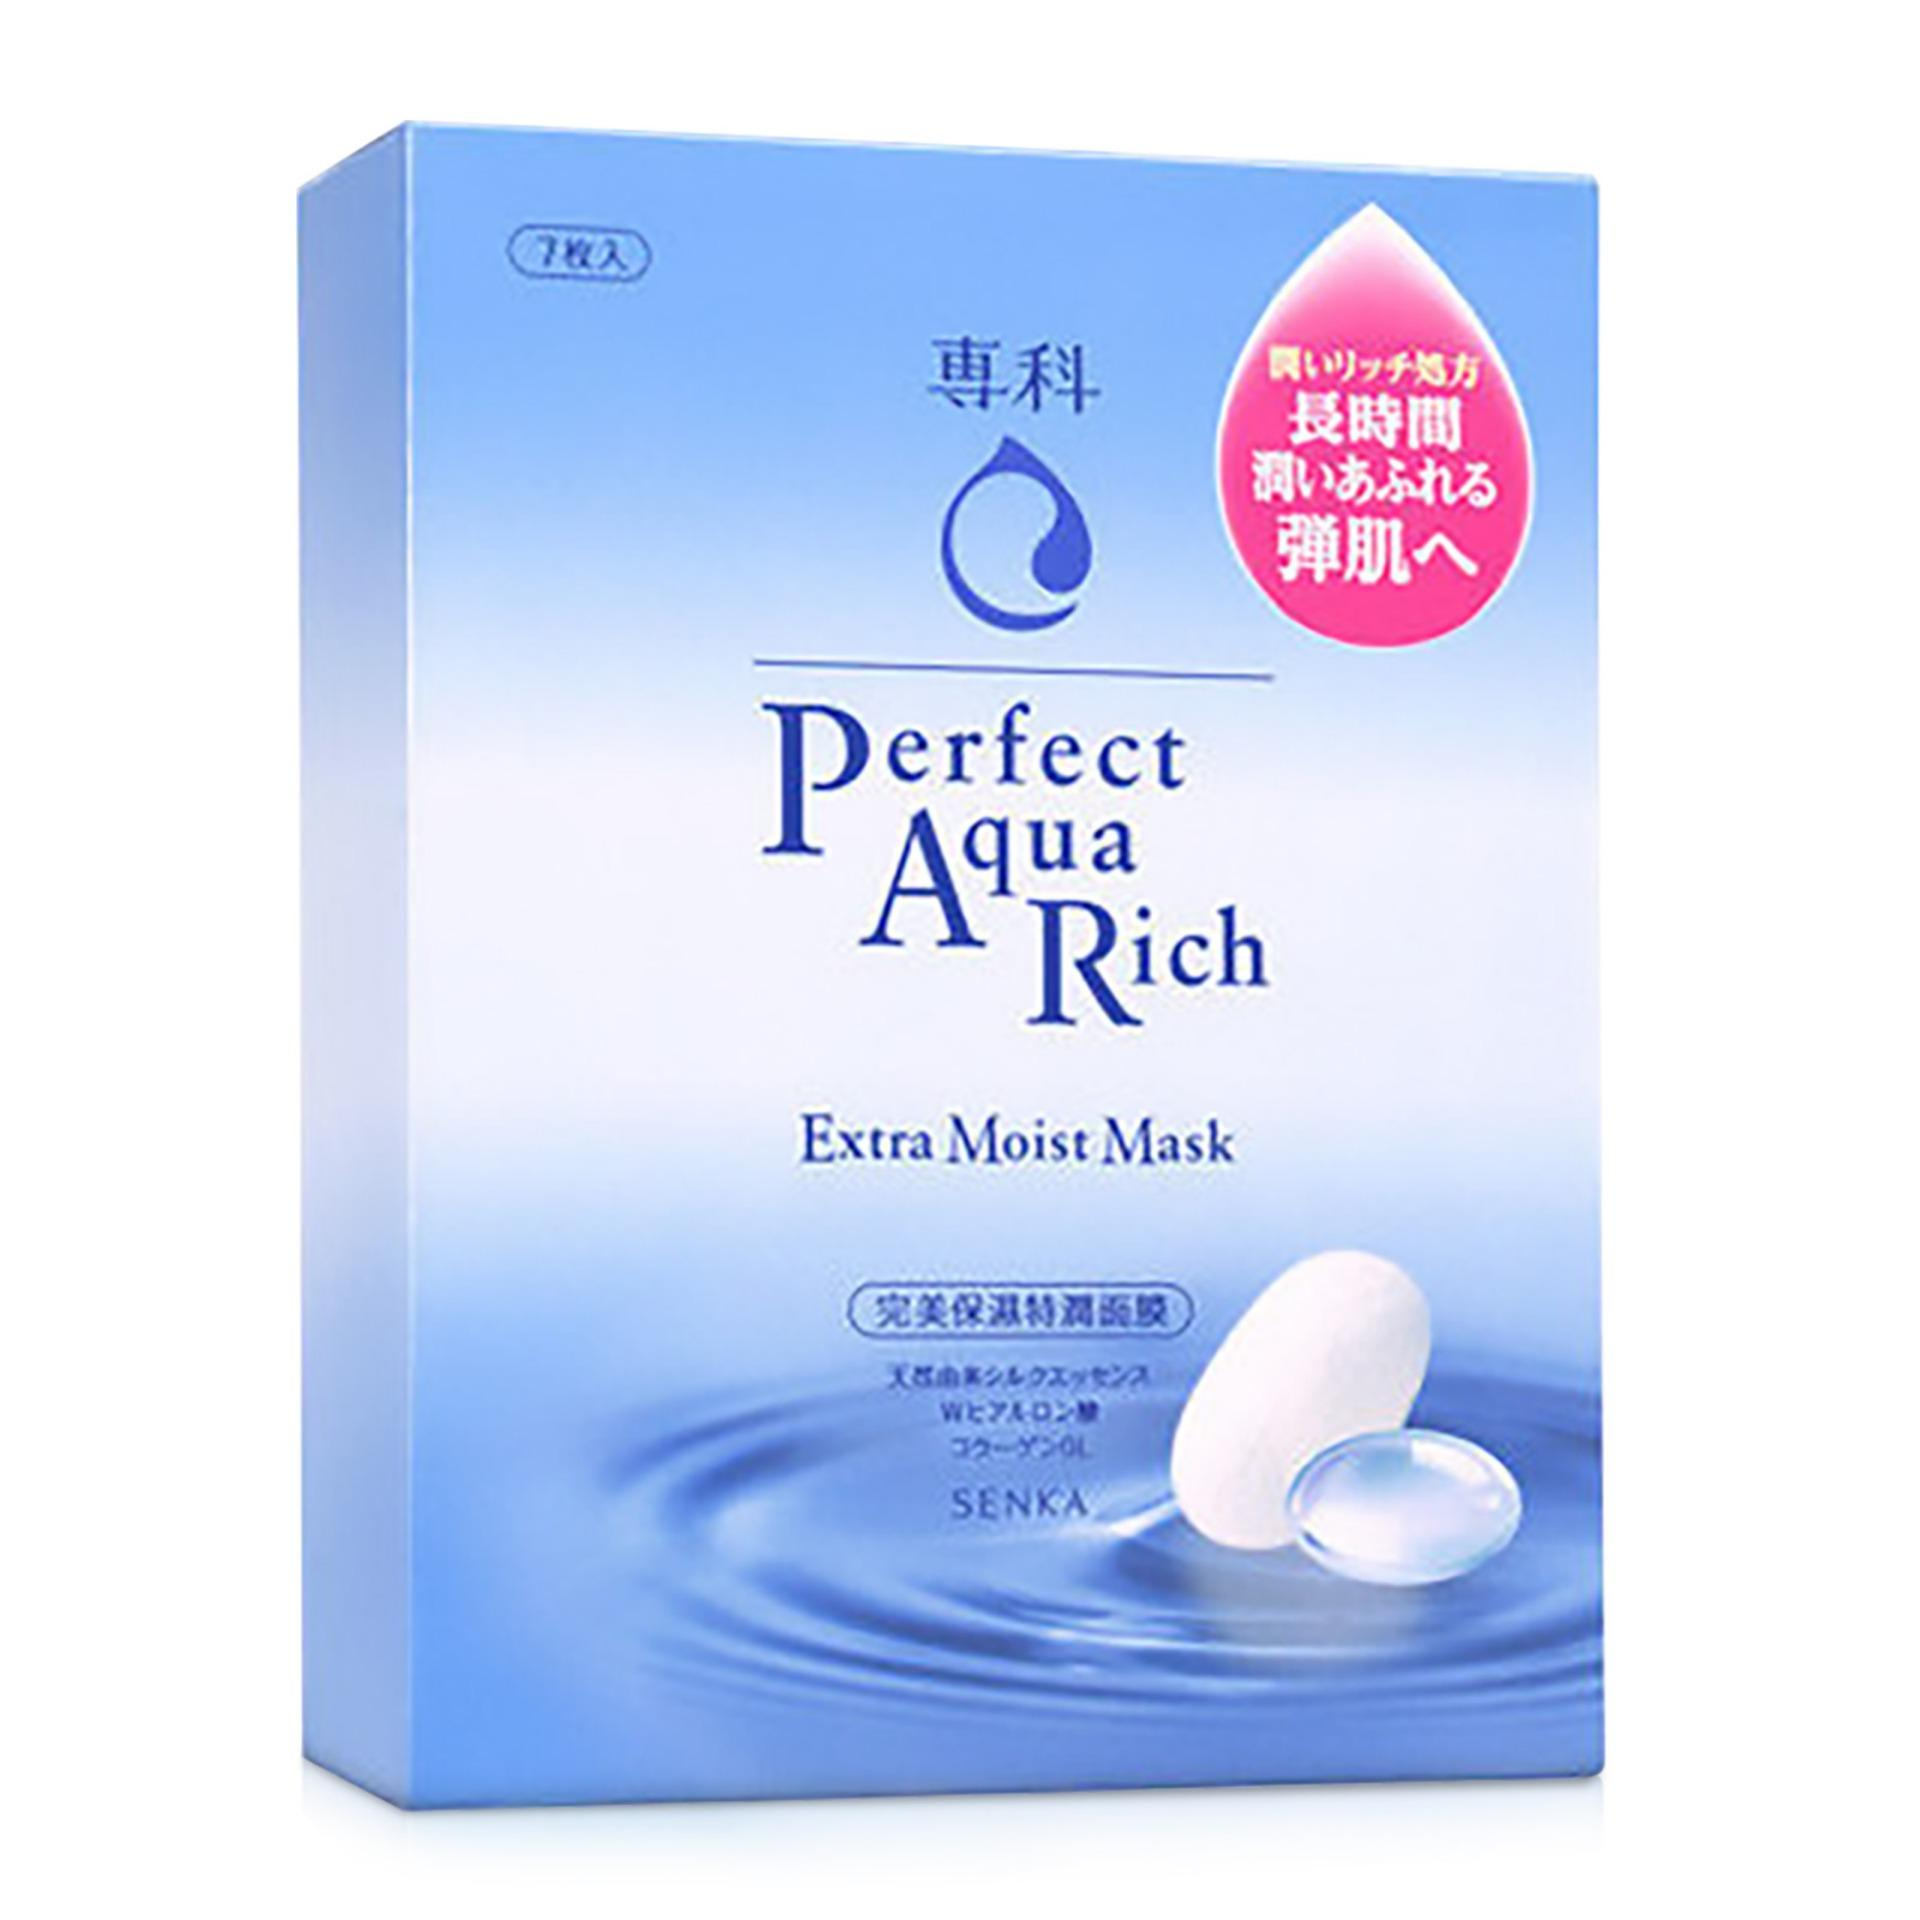 Buy Senka Aqua Rich Mask Extra Moist 7P Box Cheap On Singapore